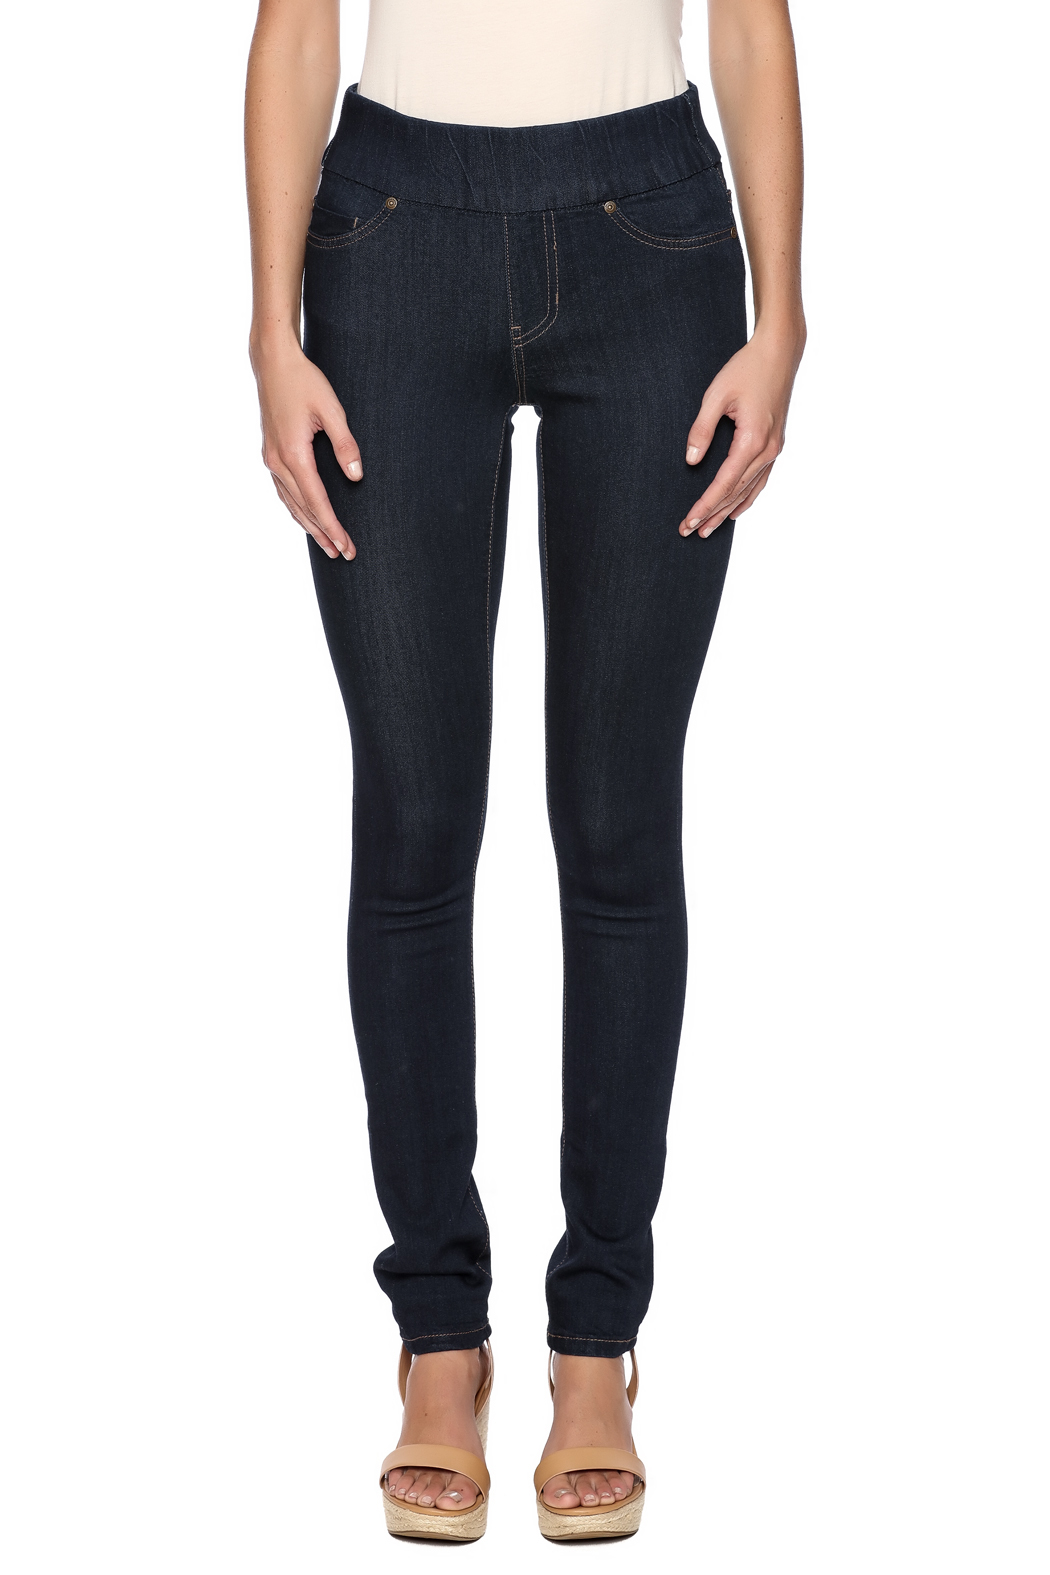 Liverpool Jeans Company Dark Indigo Sienna Jeggings - Side Cropped Image